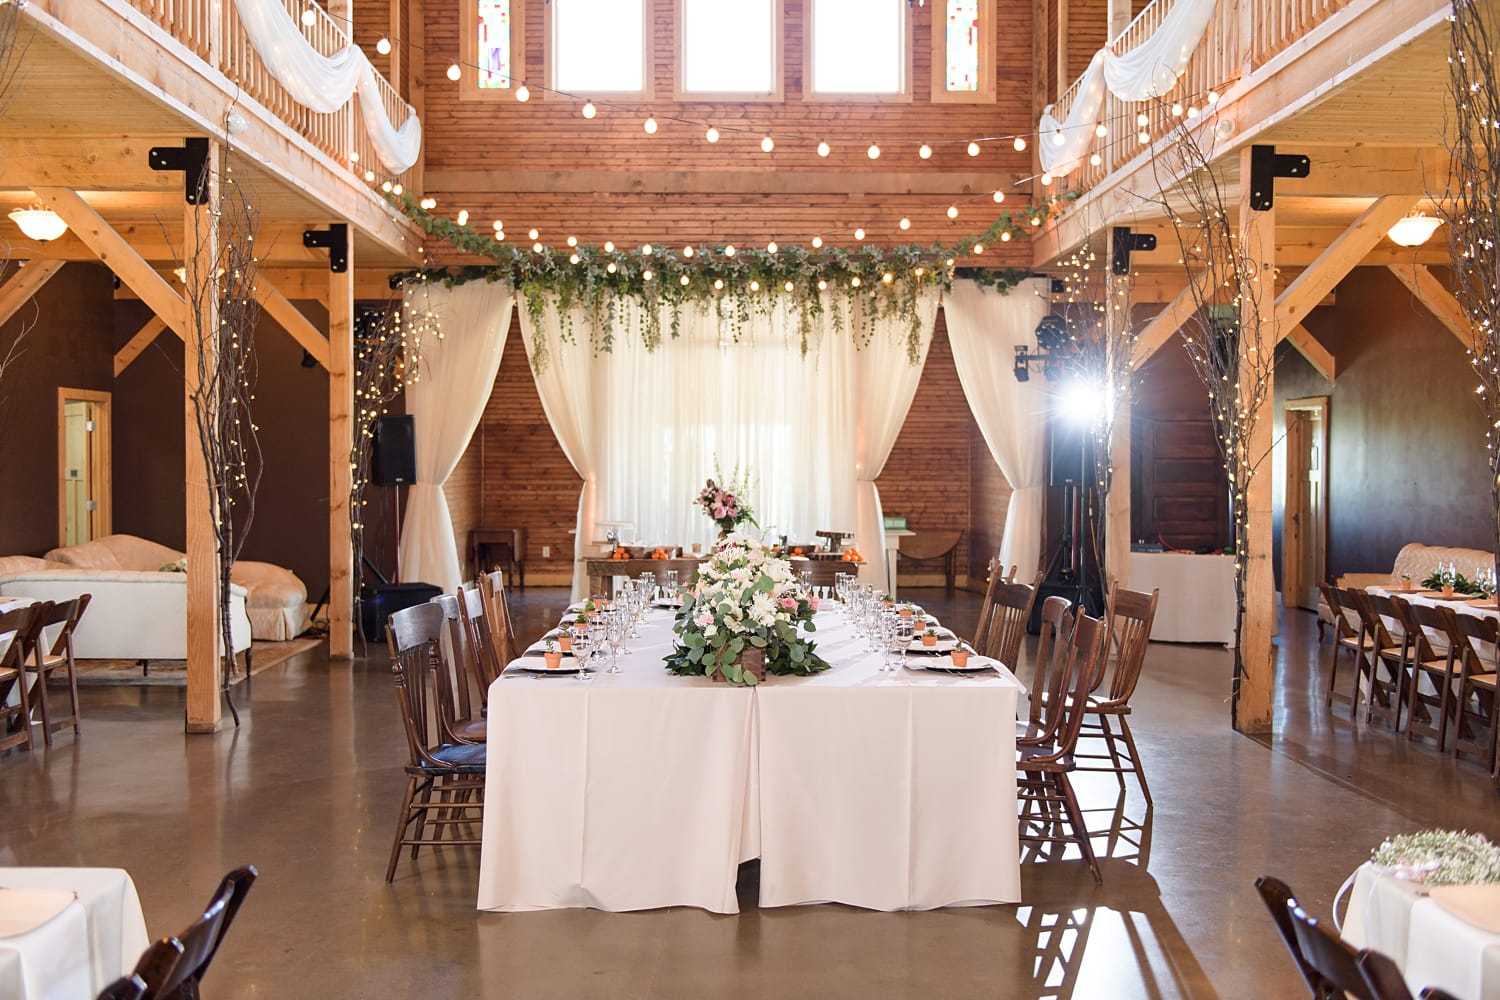 kings table for wedding reception at sugar grove